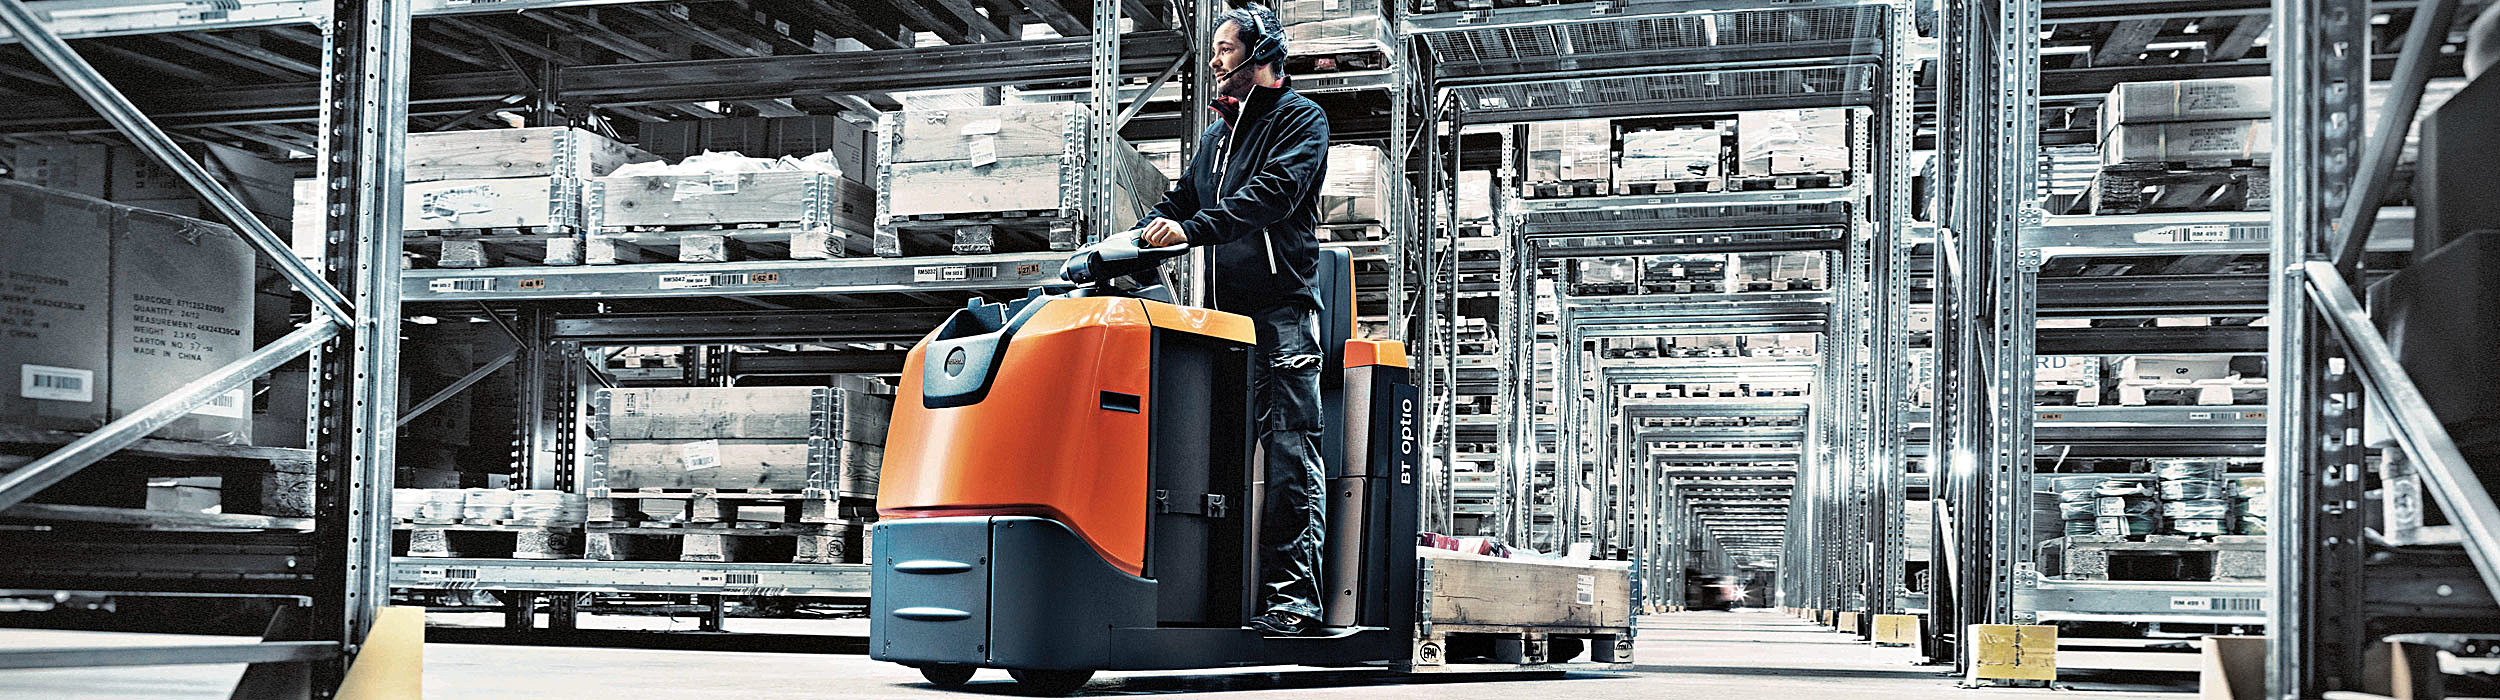 From the timeless hand pallet truck to high-tech robotics and automated solutions.